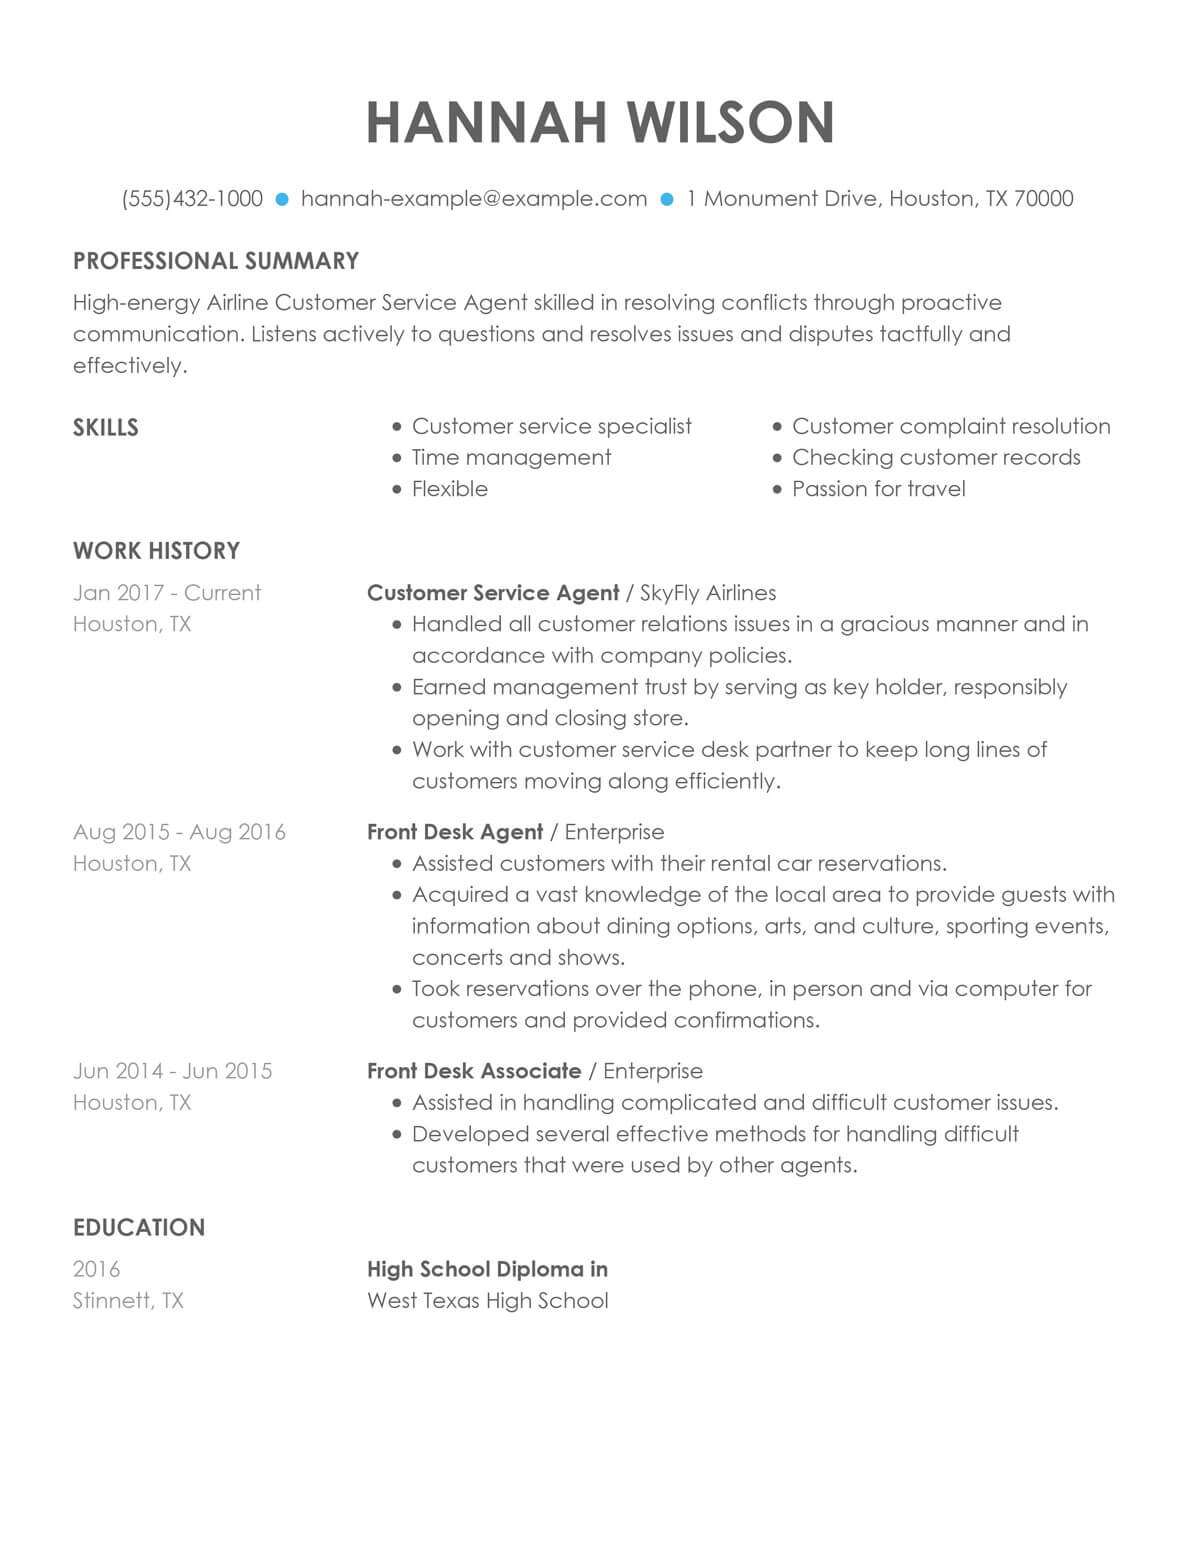 customize our customer representative resume example service airline agent sample Resume Customer Service Representative Resume